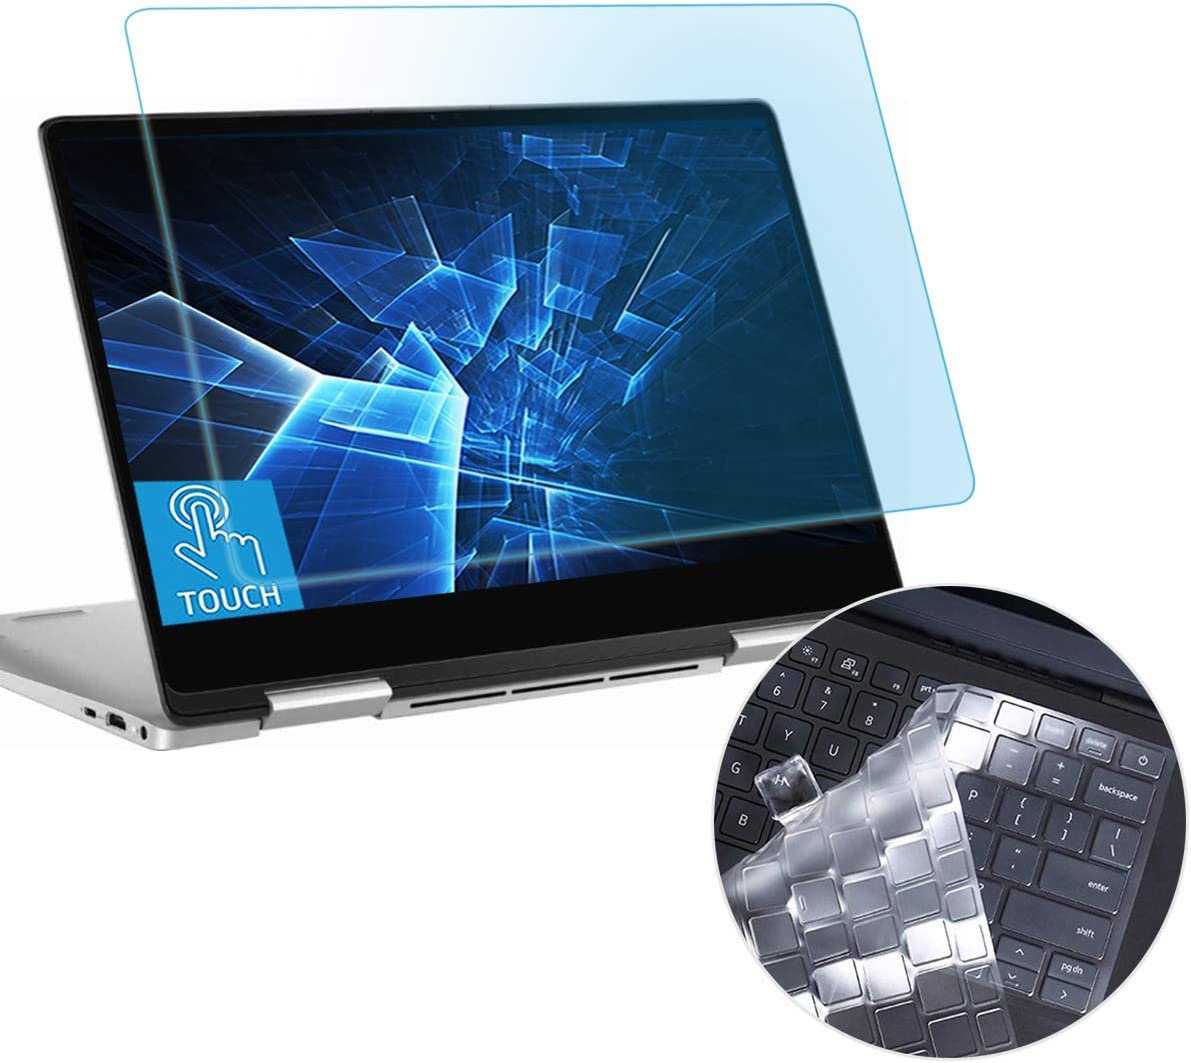 "Anti Blue Light Glare Screen Protector Fit Dell Inspiron 13 2-in-1 7391-13.3"" Gift Keyboard Cover Touchscreen Eyes Protection Filter Reduces Eye Strain Help You Sleep Better Anti Fingerprint"